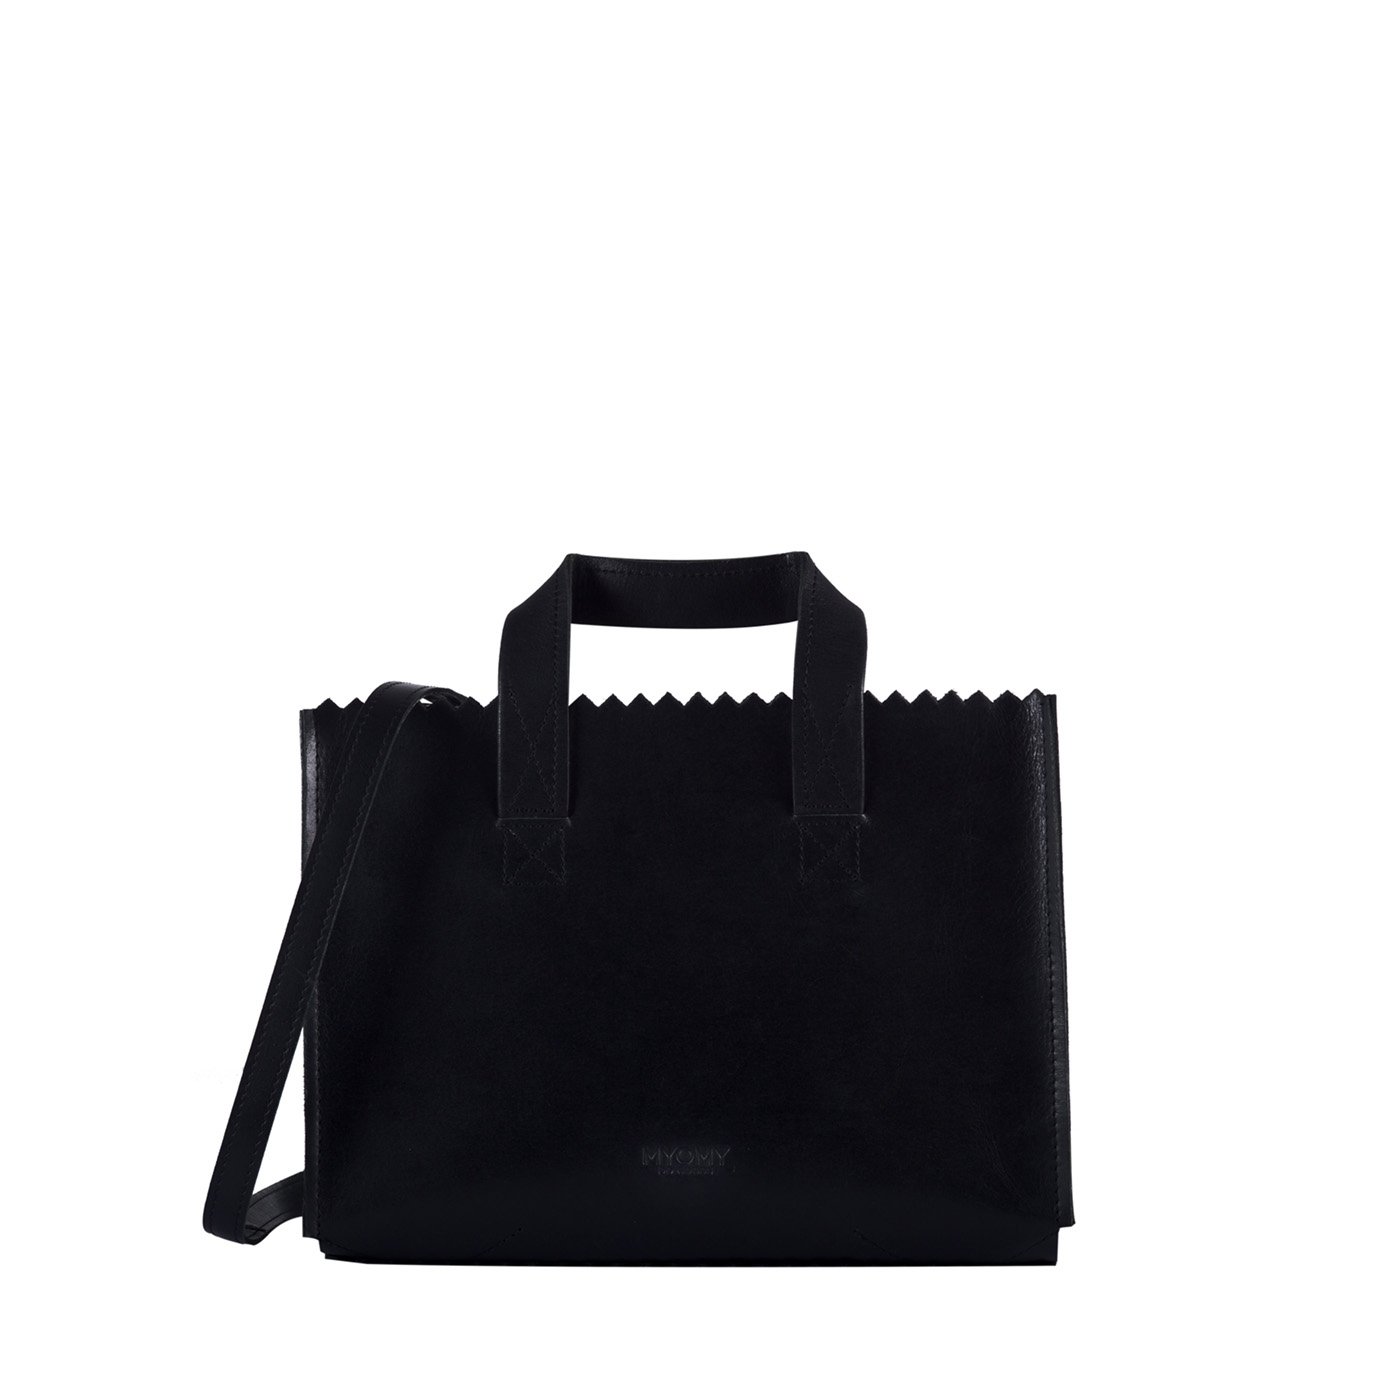 MY PAPER BAG Mini handbag cross-body  – hunter waxy black